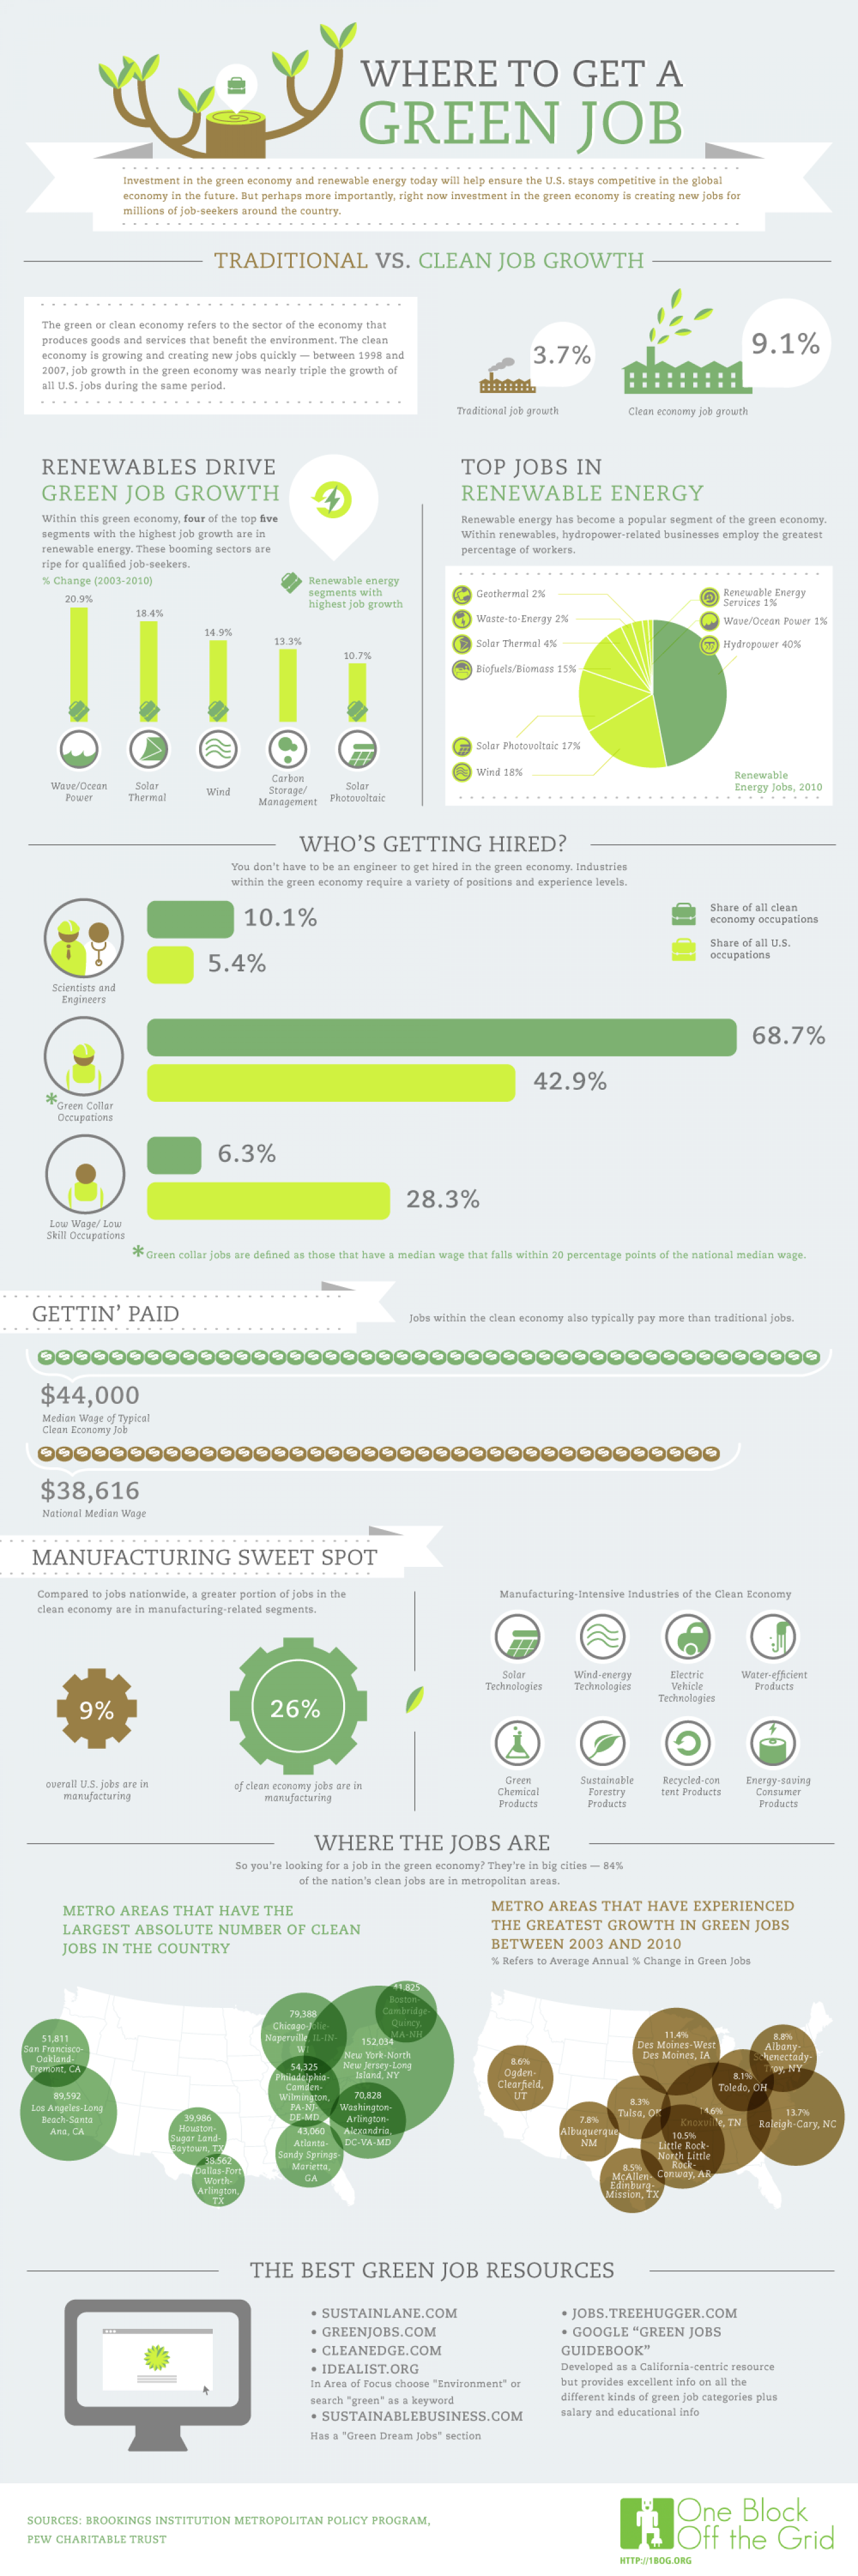 Where To Get A Green Job Infographic